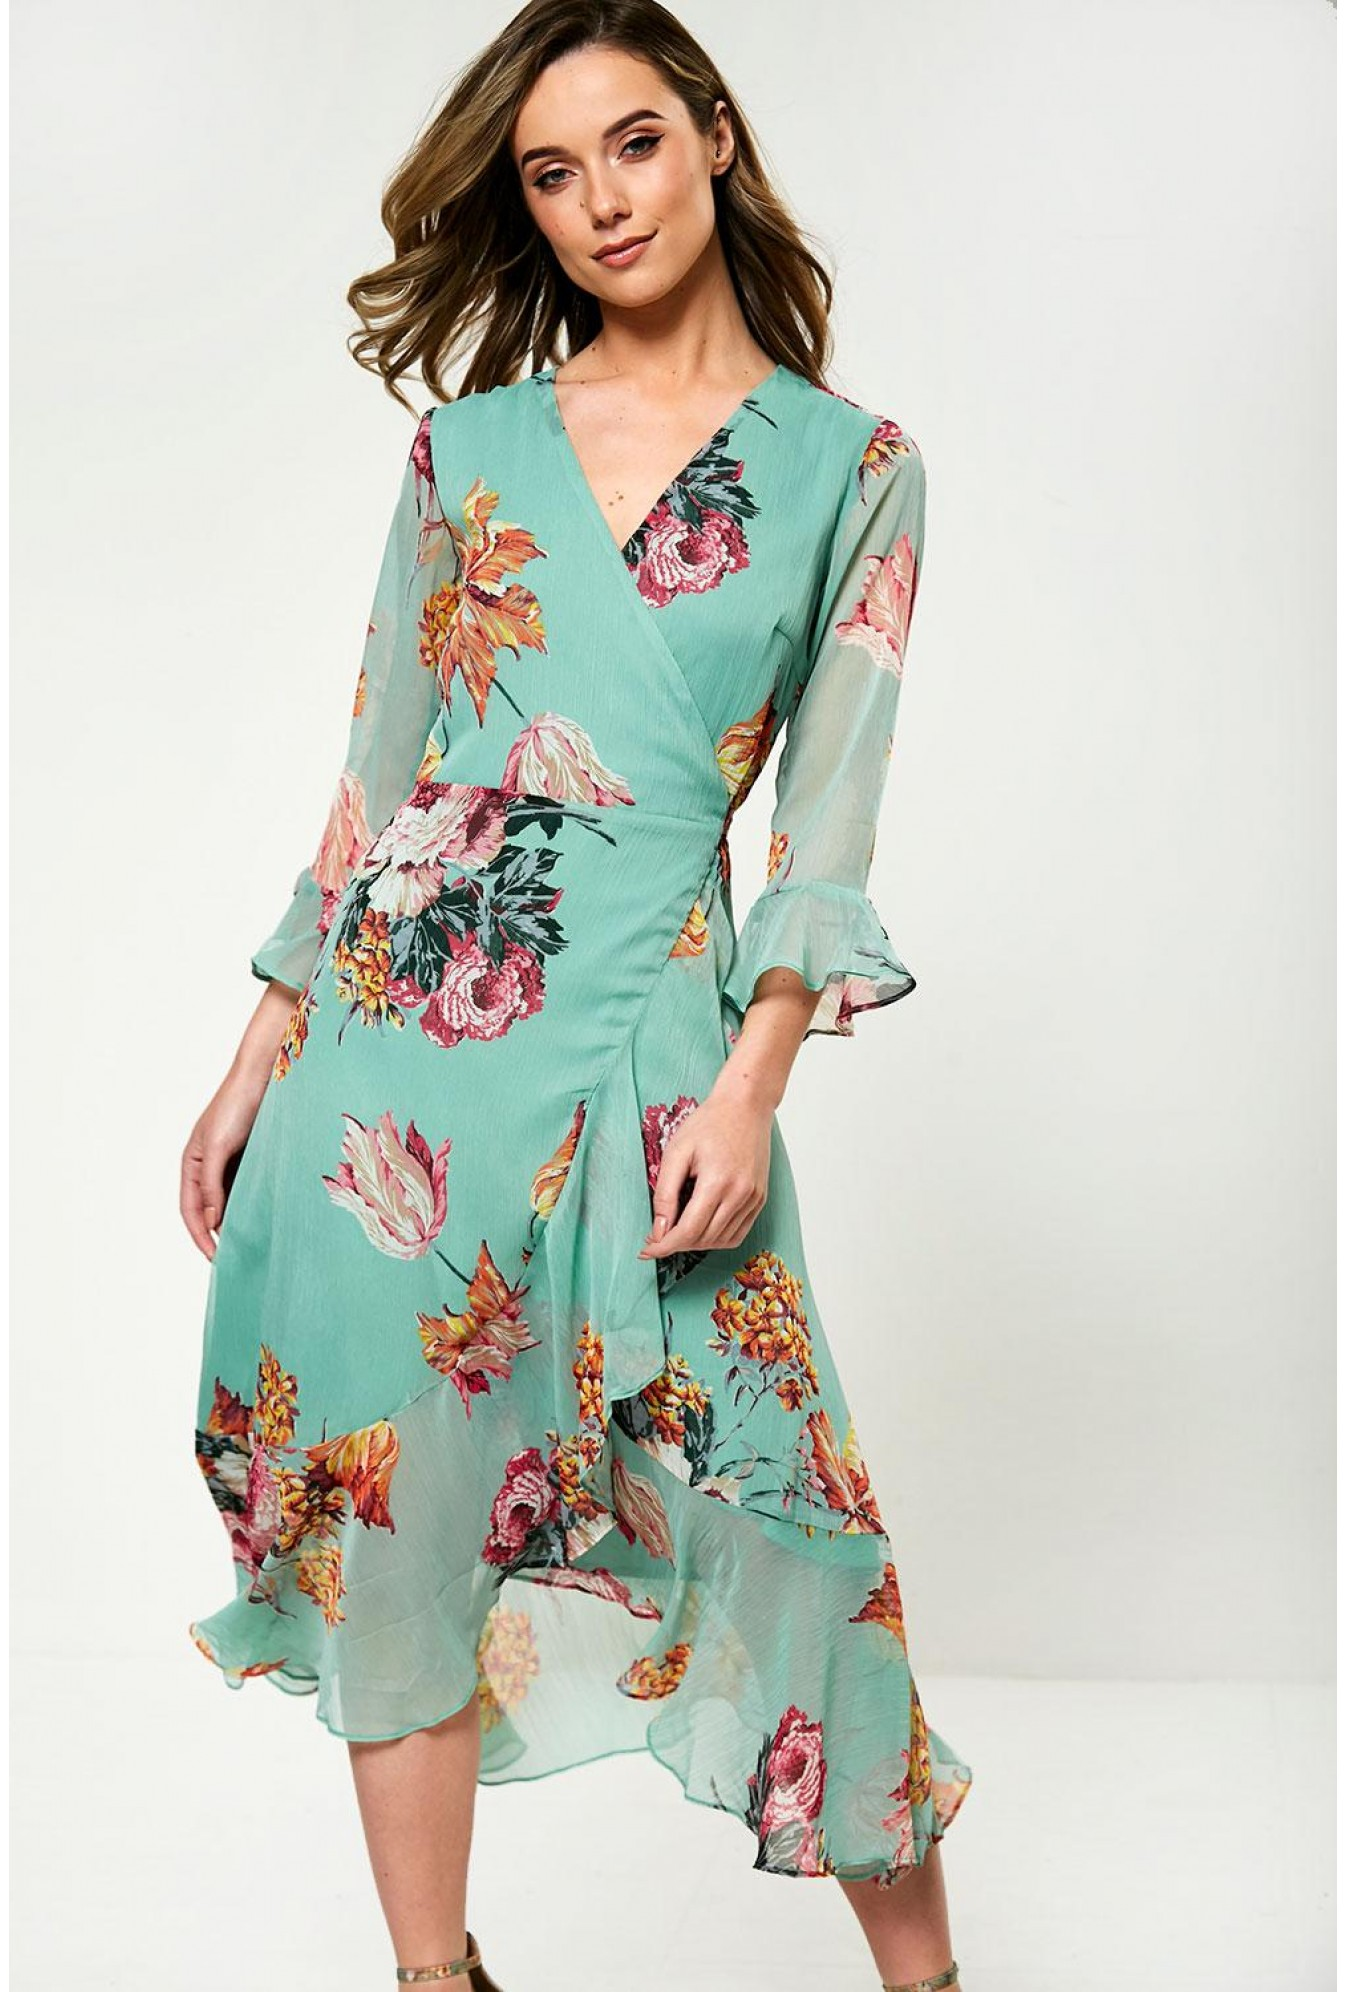 1ebc135aa8 YAS Floral Print Midi Wrap Dress in Mint | iCLOTHING